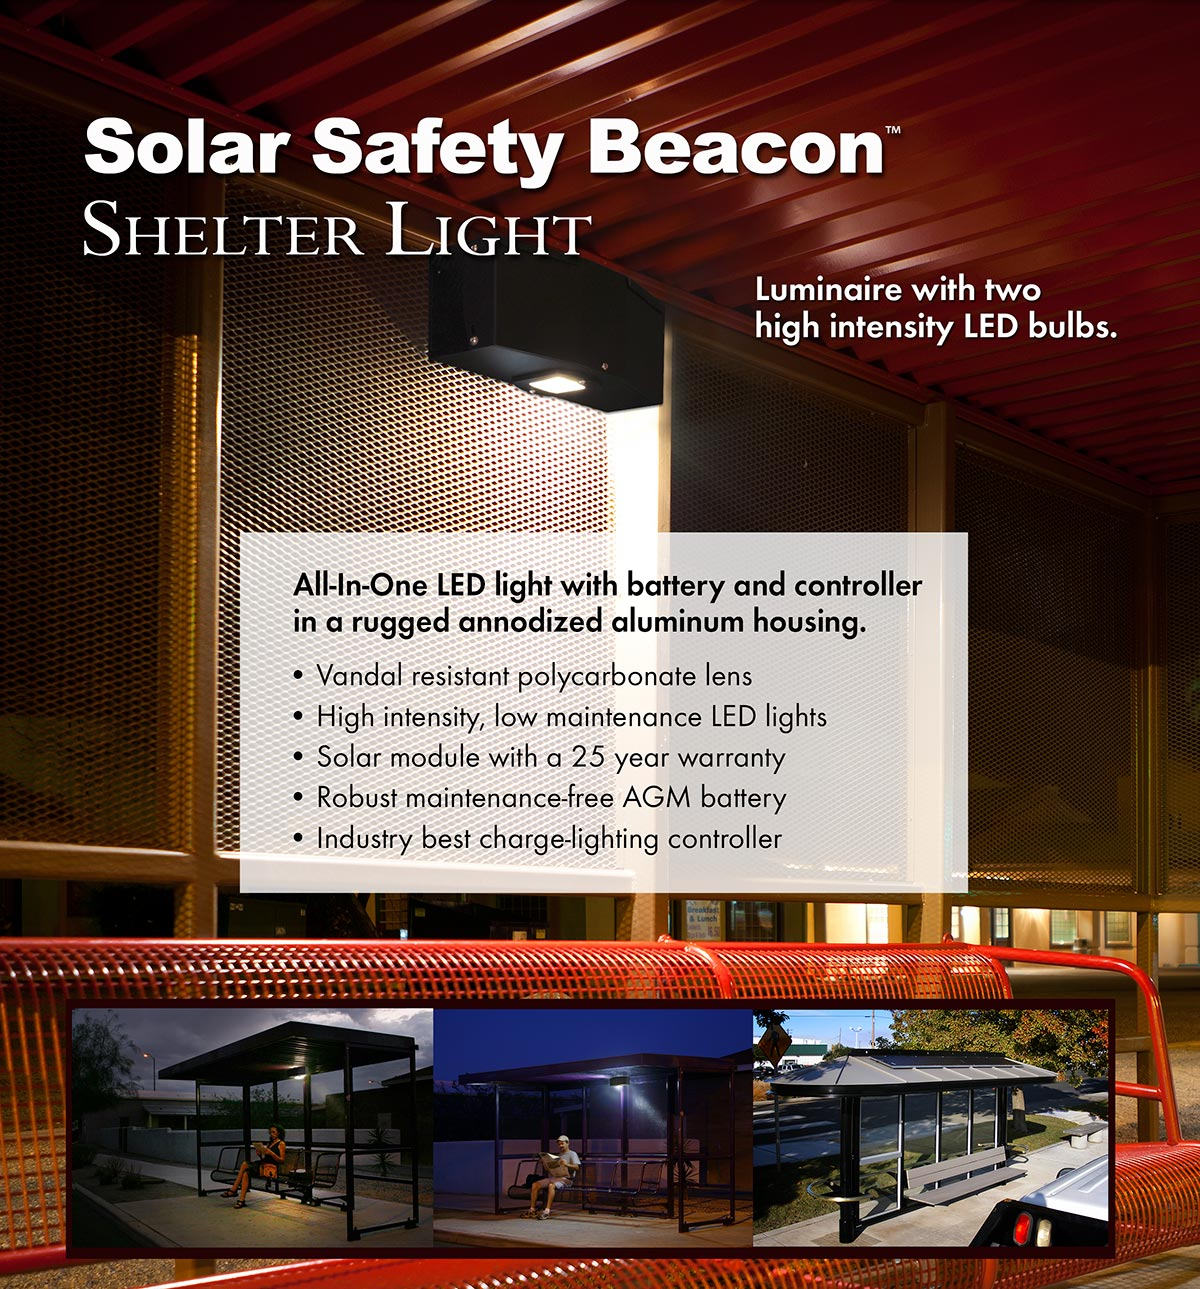 Safety Beacon information